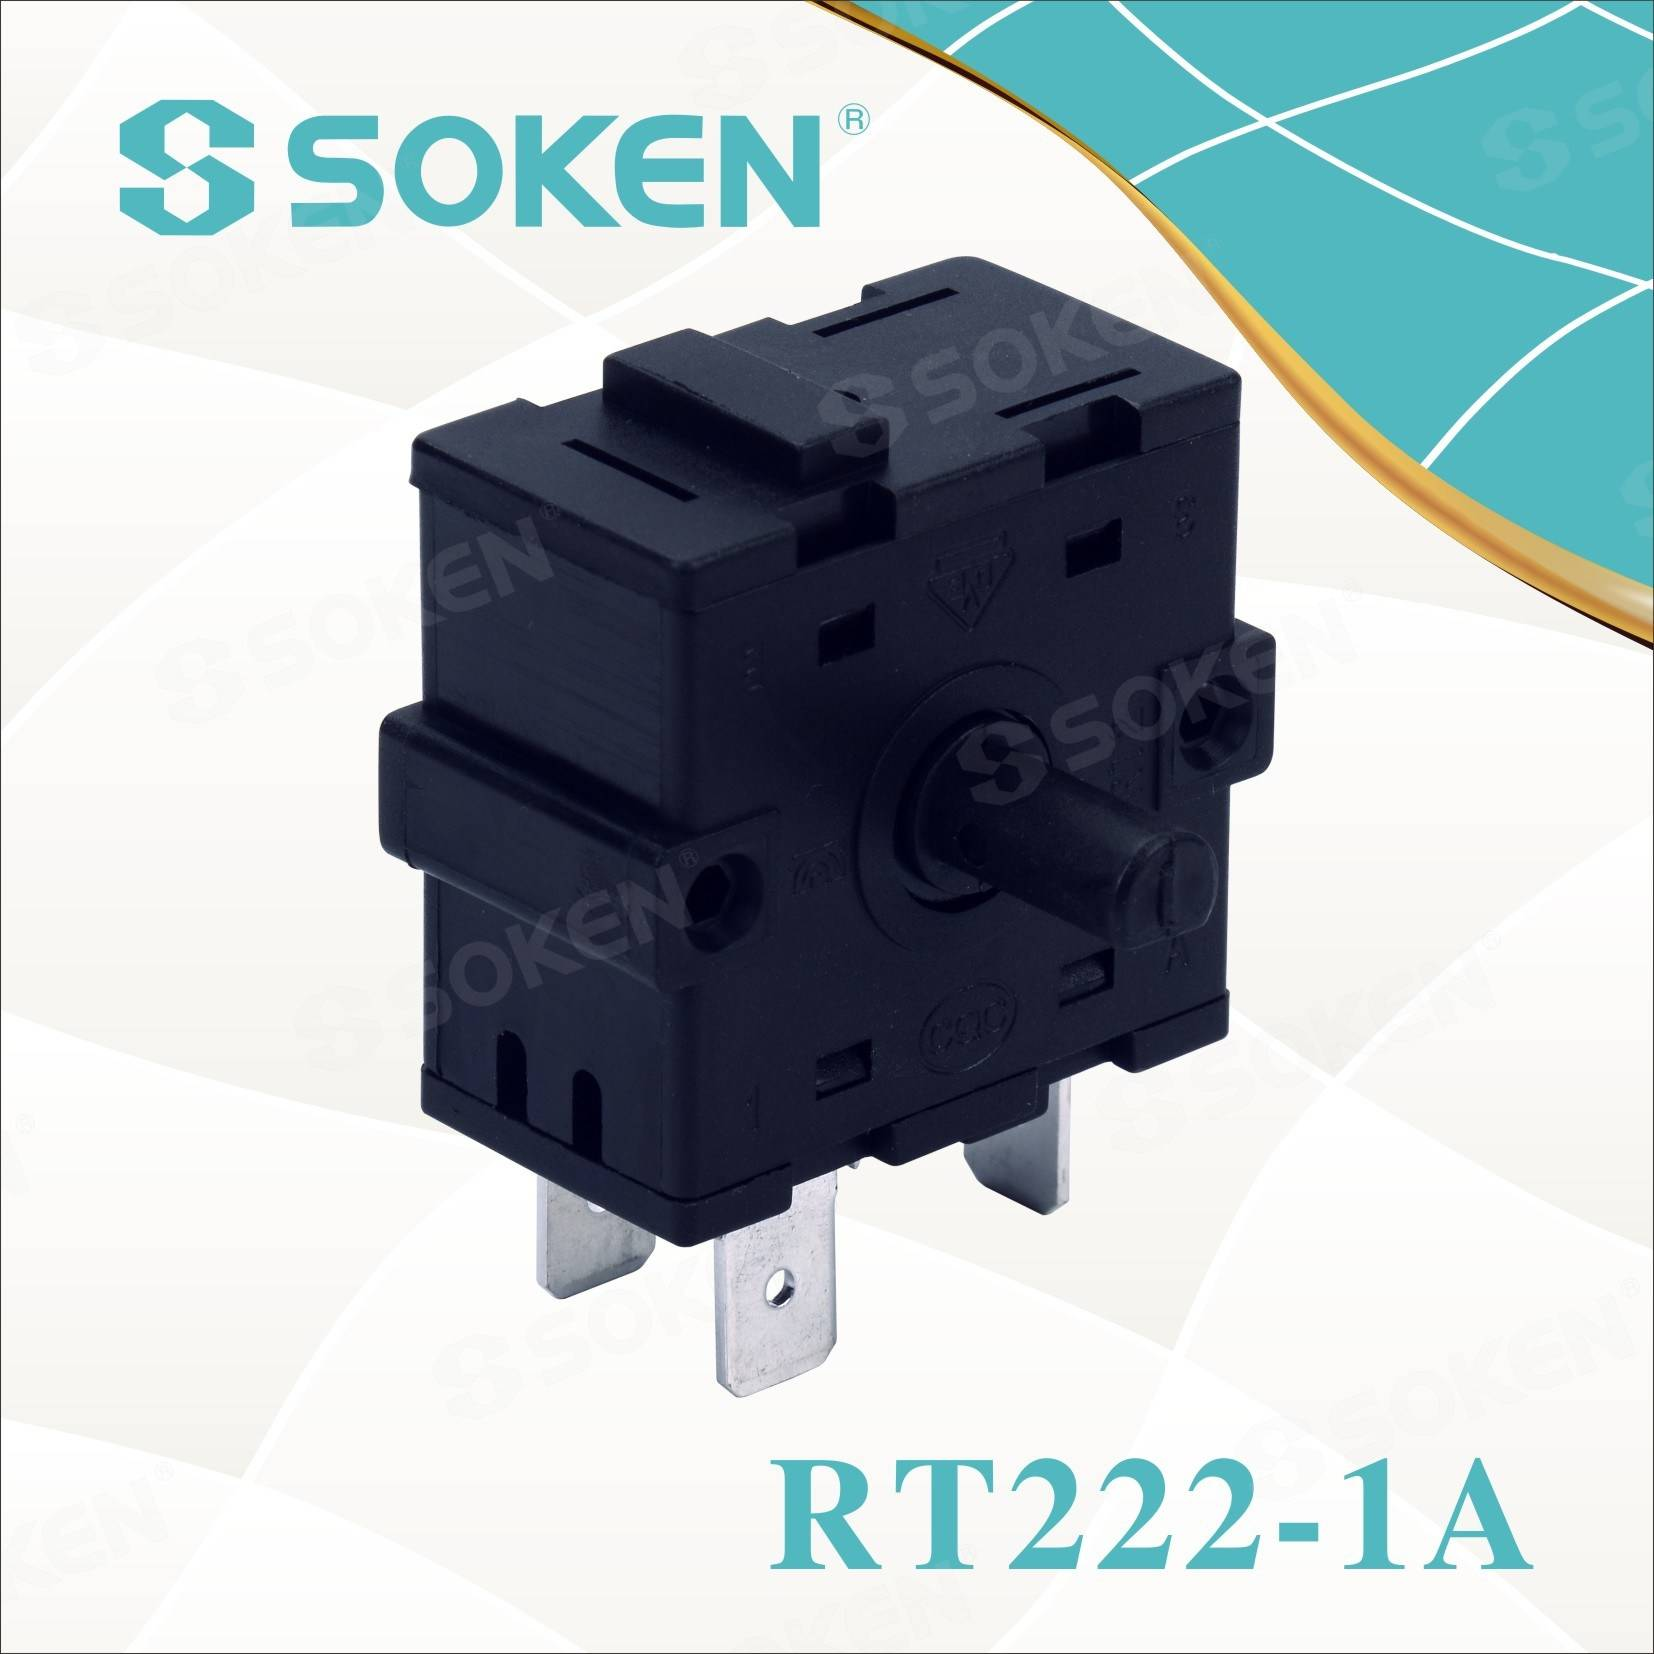 Quality Inspection for Digital Doorbell Push Button Switch -